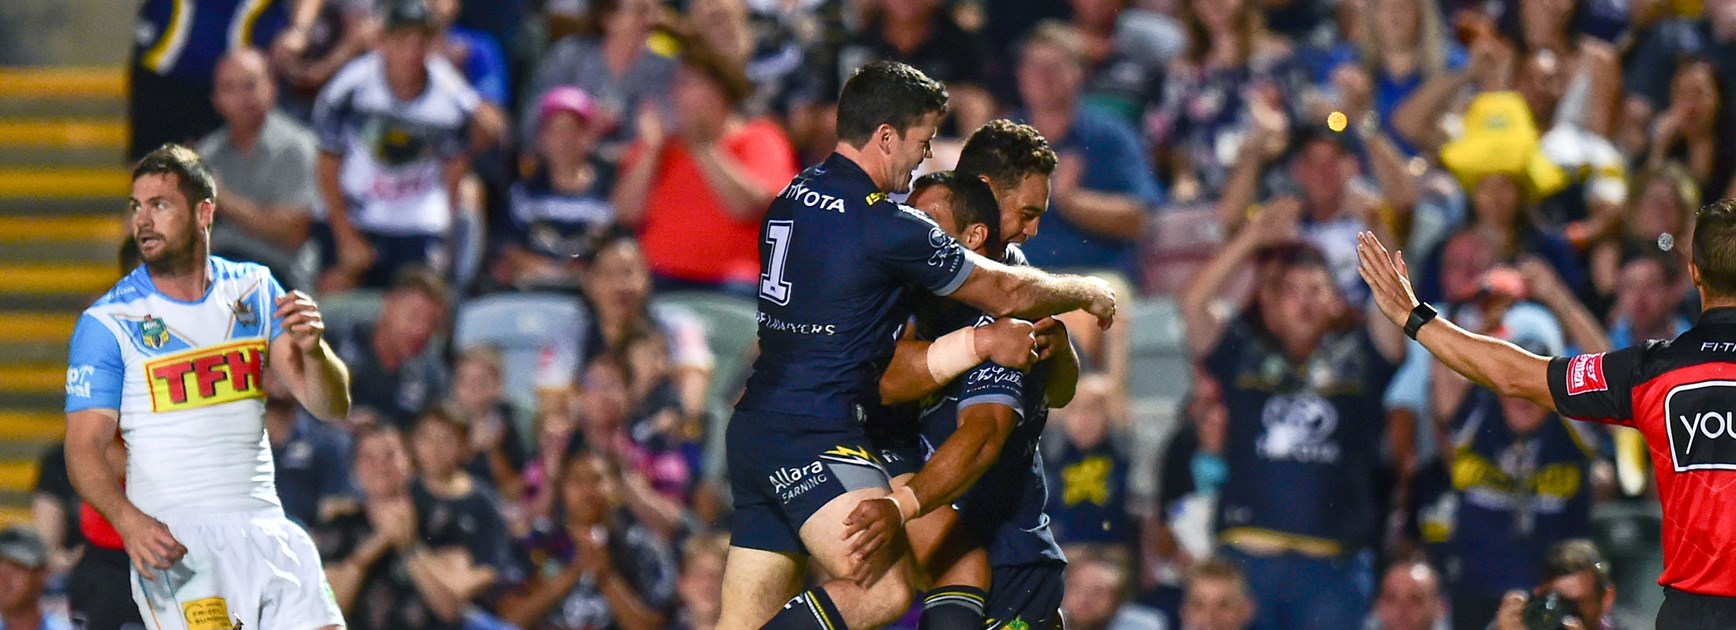 5 things you need to know: Round 8 v Titans